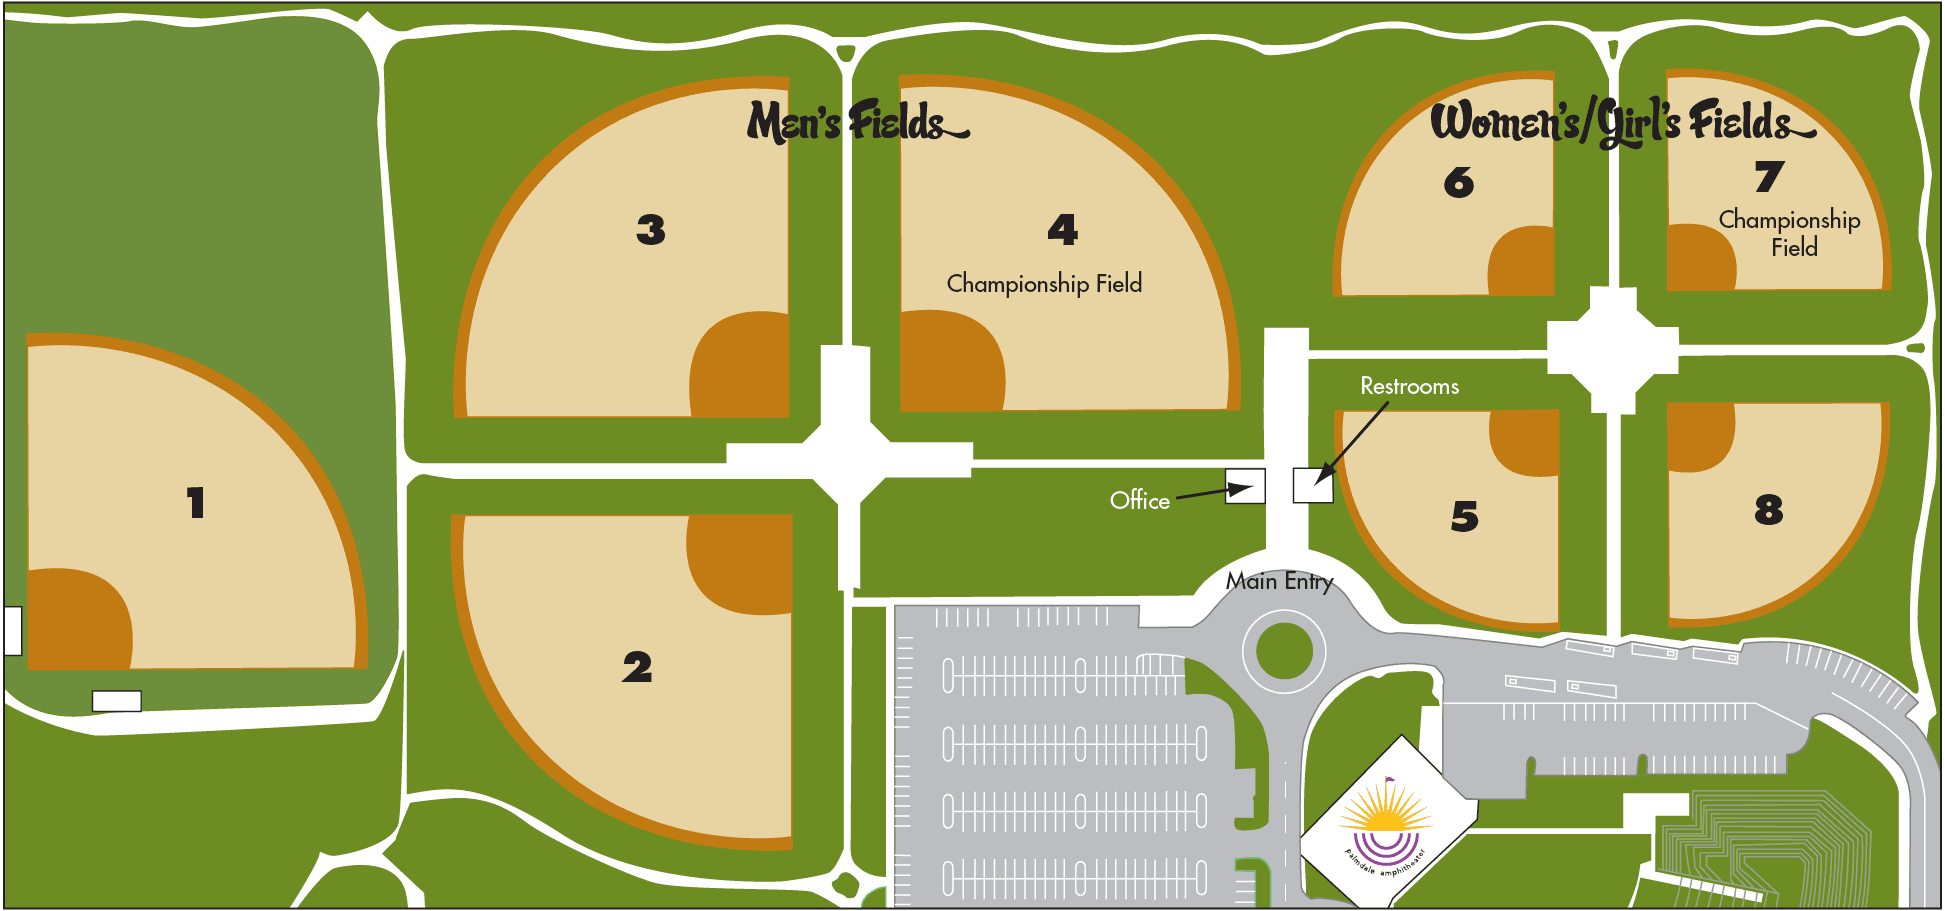 Best of the West Softball Complex map with numbered fields